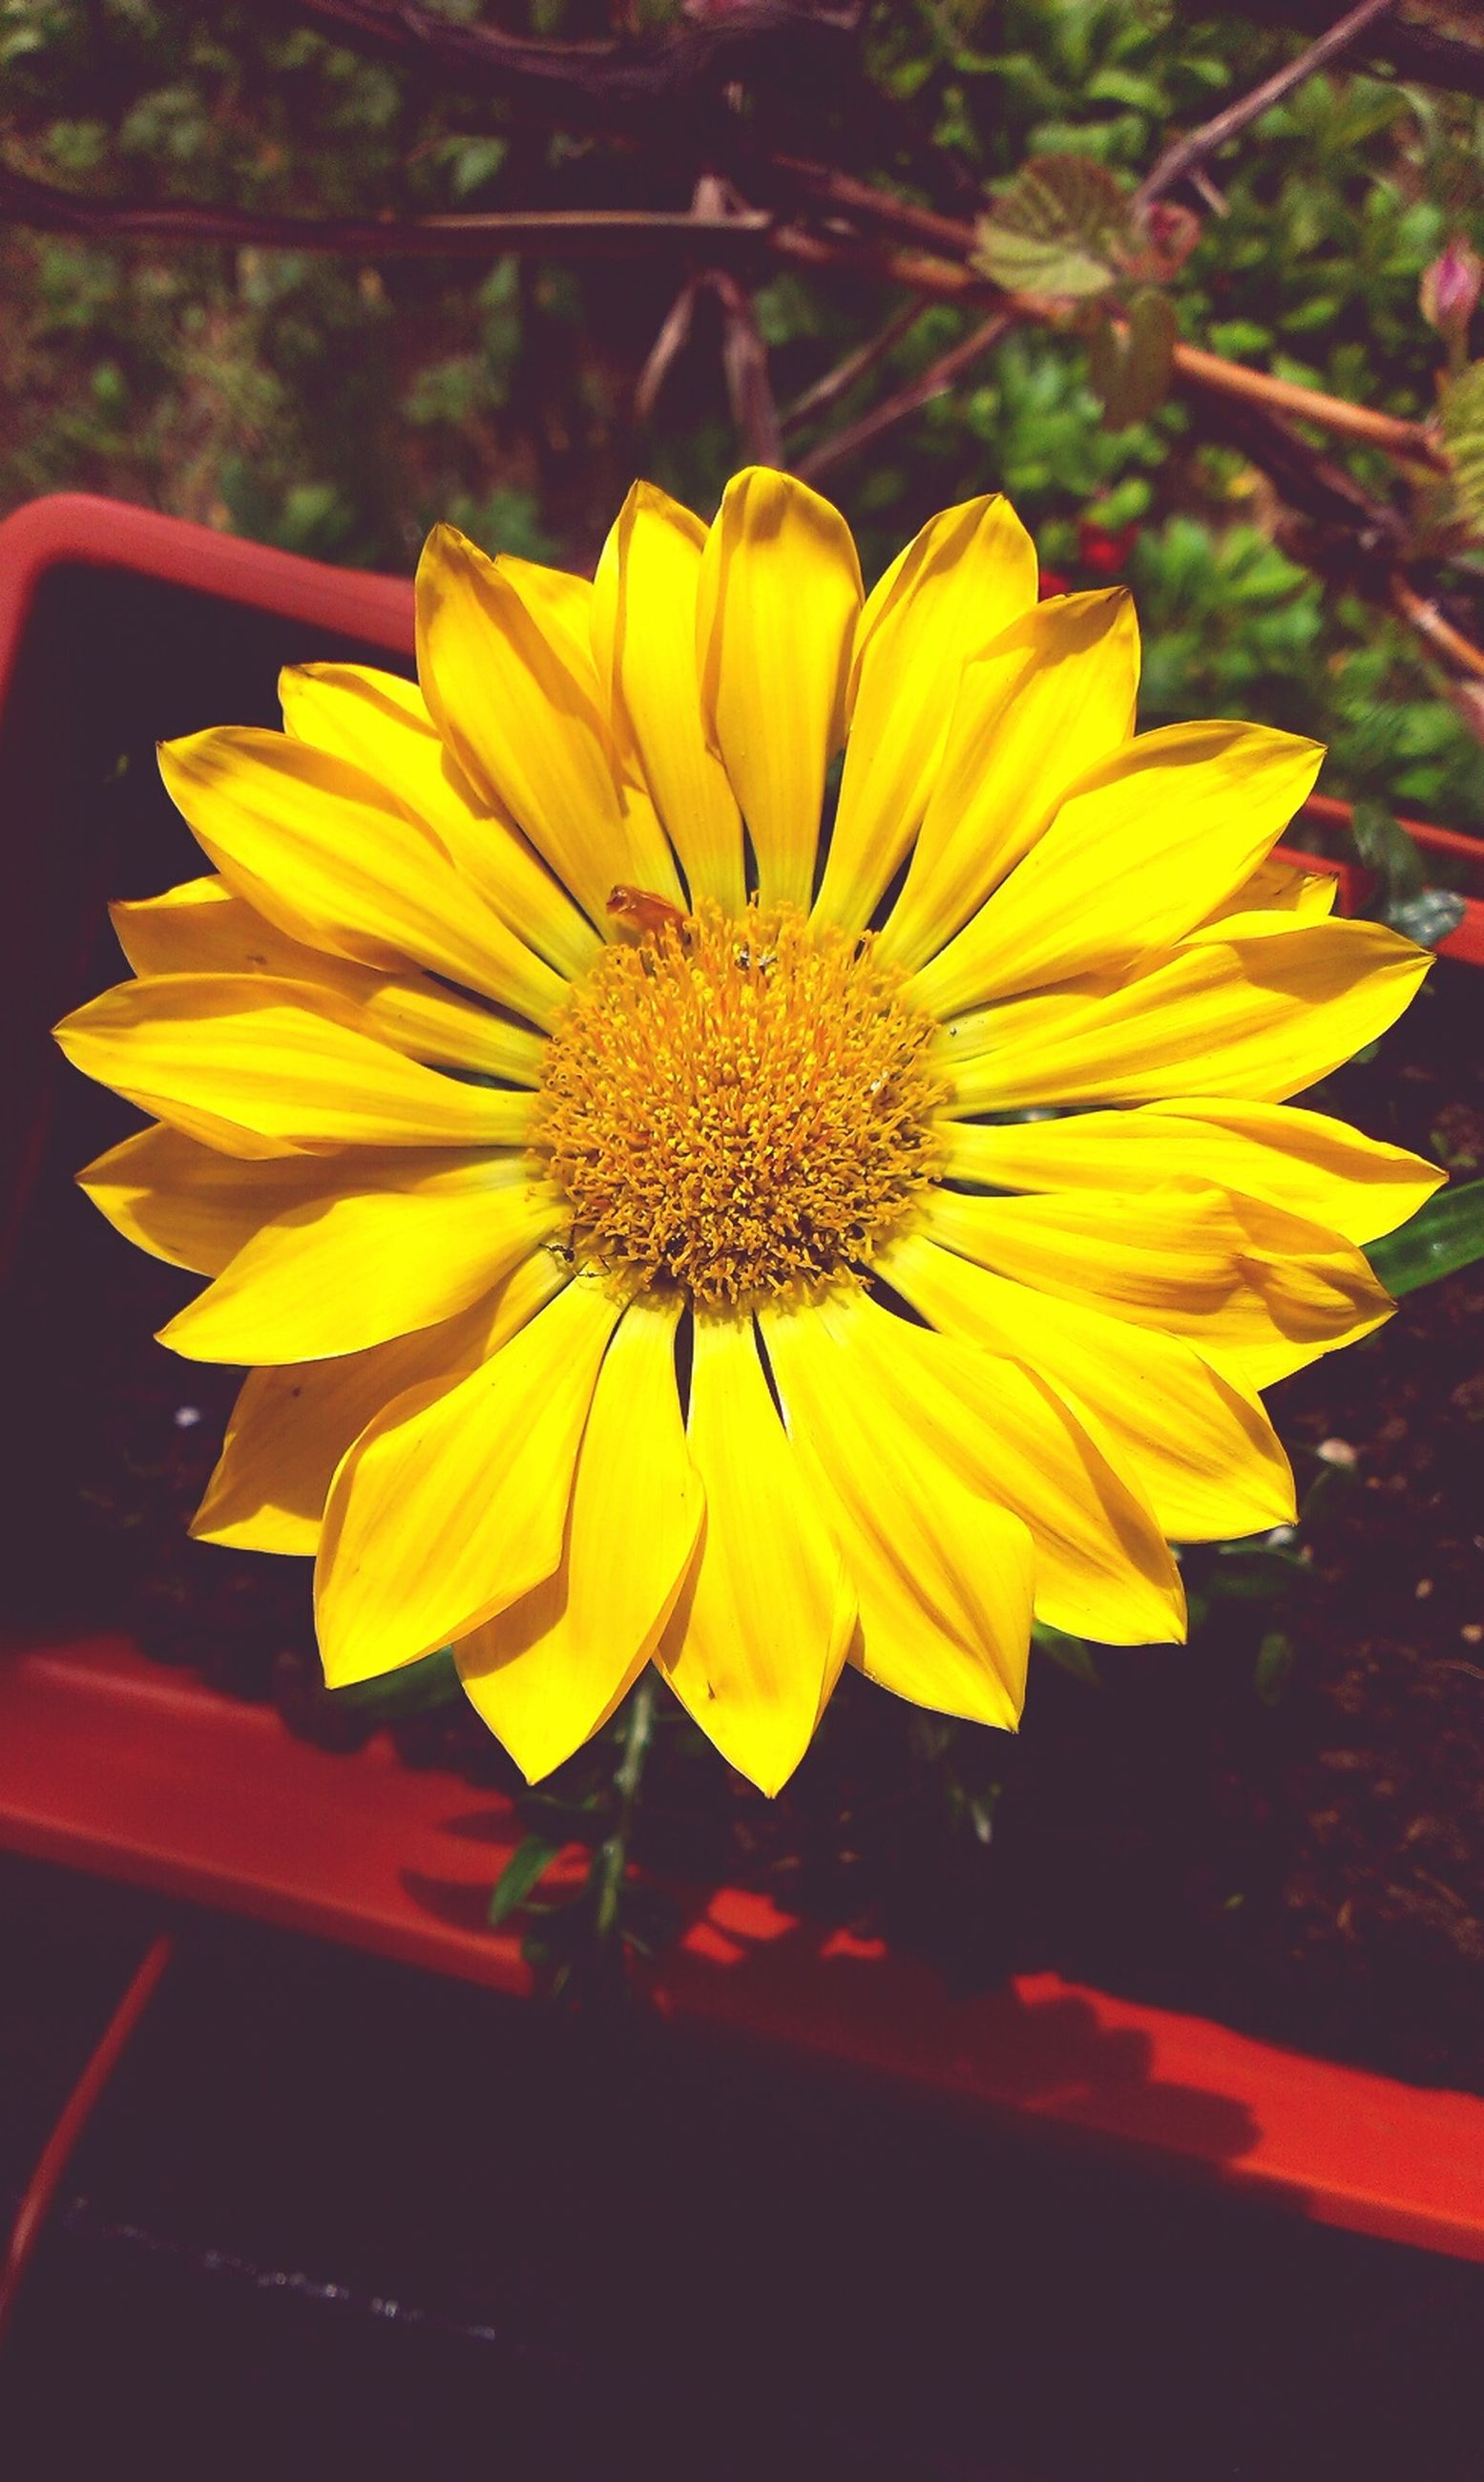 flower, yellow, petal, flower head, freshness, fragility, close-up, single flower, growth, pollen, beauty in nature, nature, focus on foreground, blooming, plant, sunflower, in bloom, outdoors, no people, day